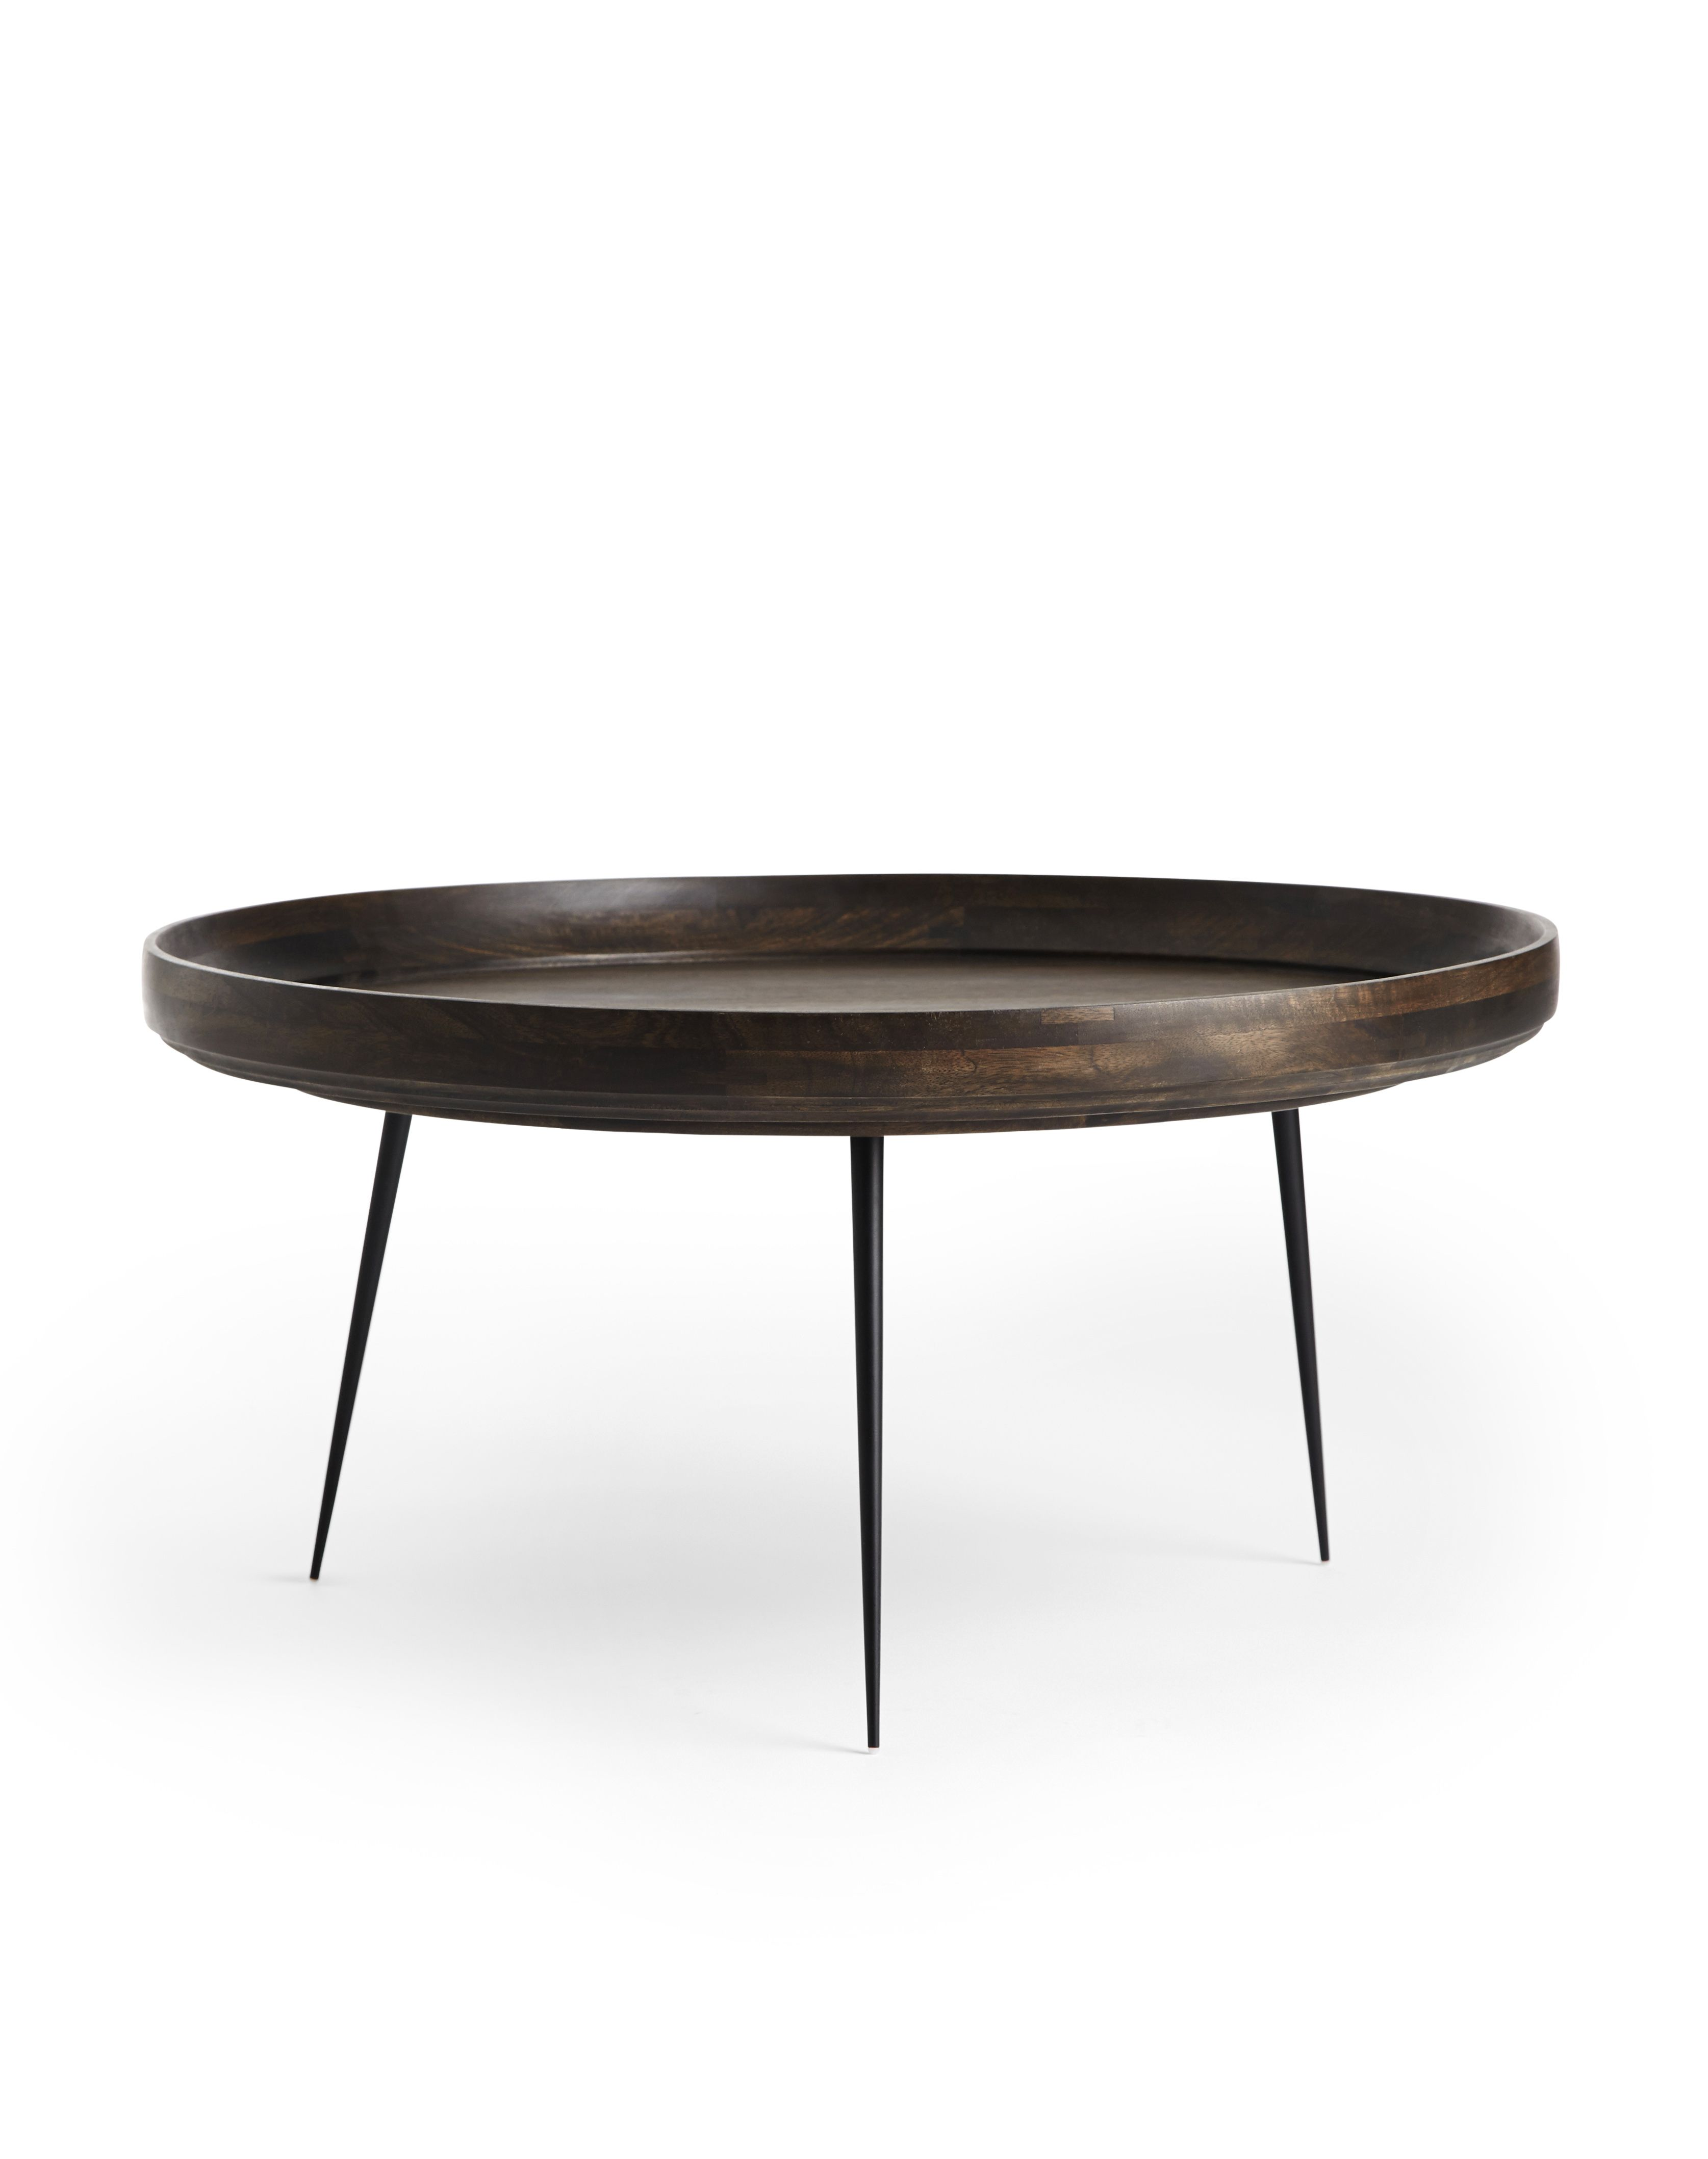 Mater Bowl Table Xl By Ayush Kasliwal In Sirka Grey Stained Mango O 75 Cm X H 38 Cm Coffee Table Furniture Side Table Wood [ 4233 x 3349 Pixel ]